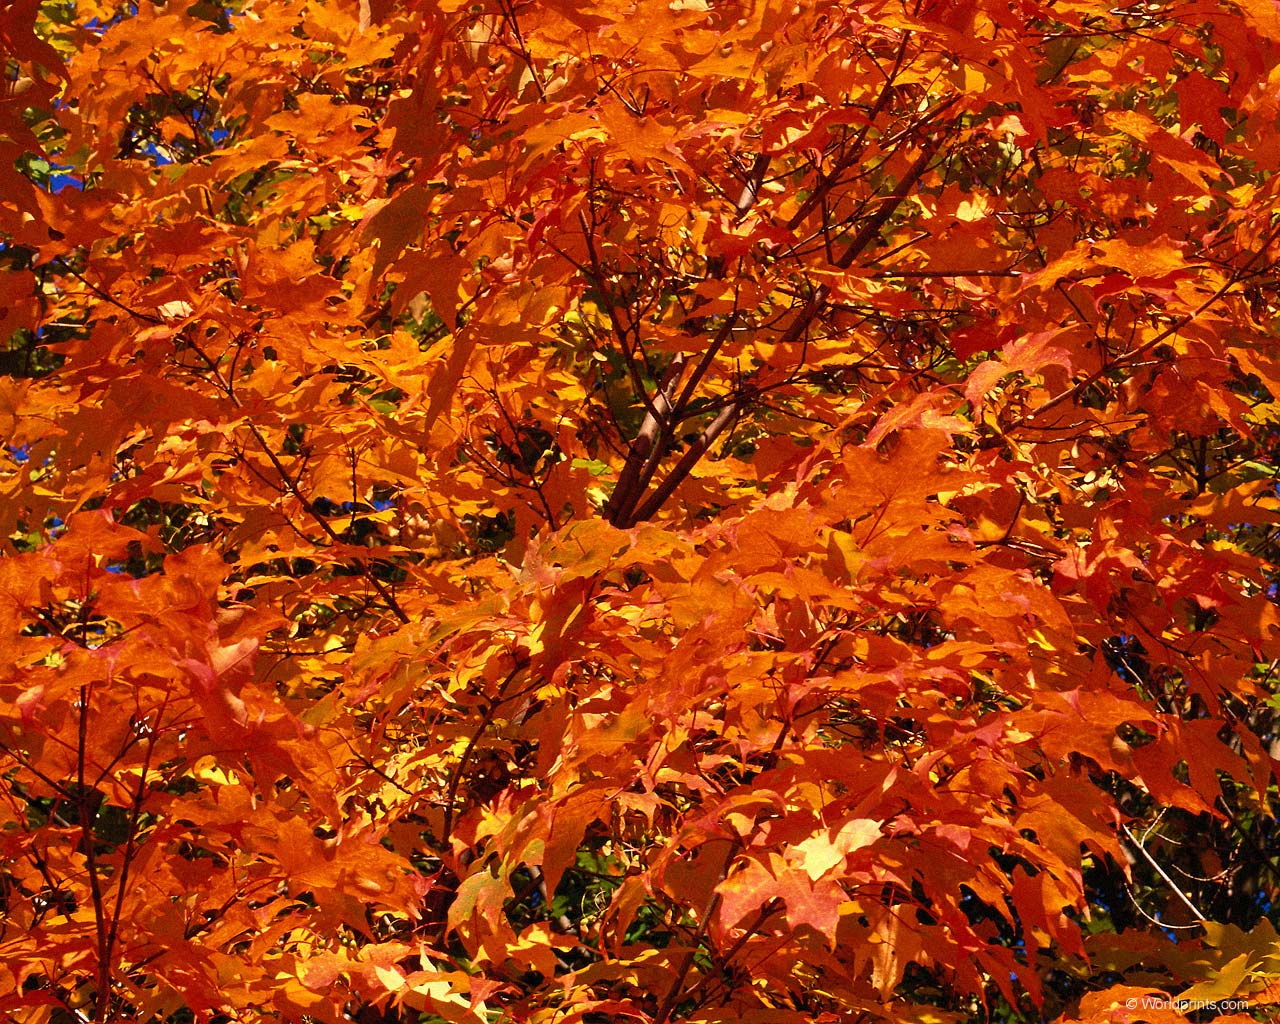 Orange Leaves 33489 1680x1050 px